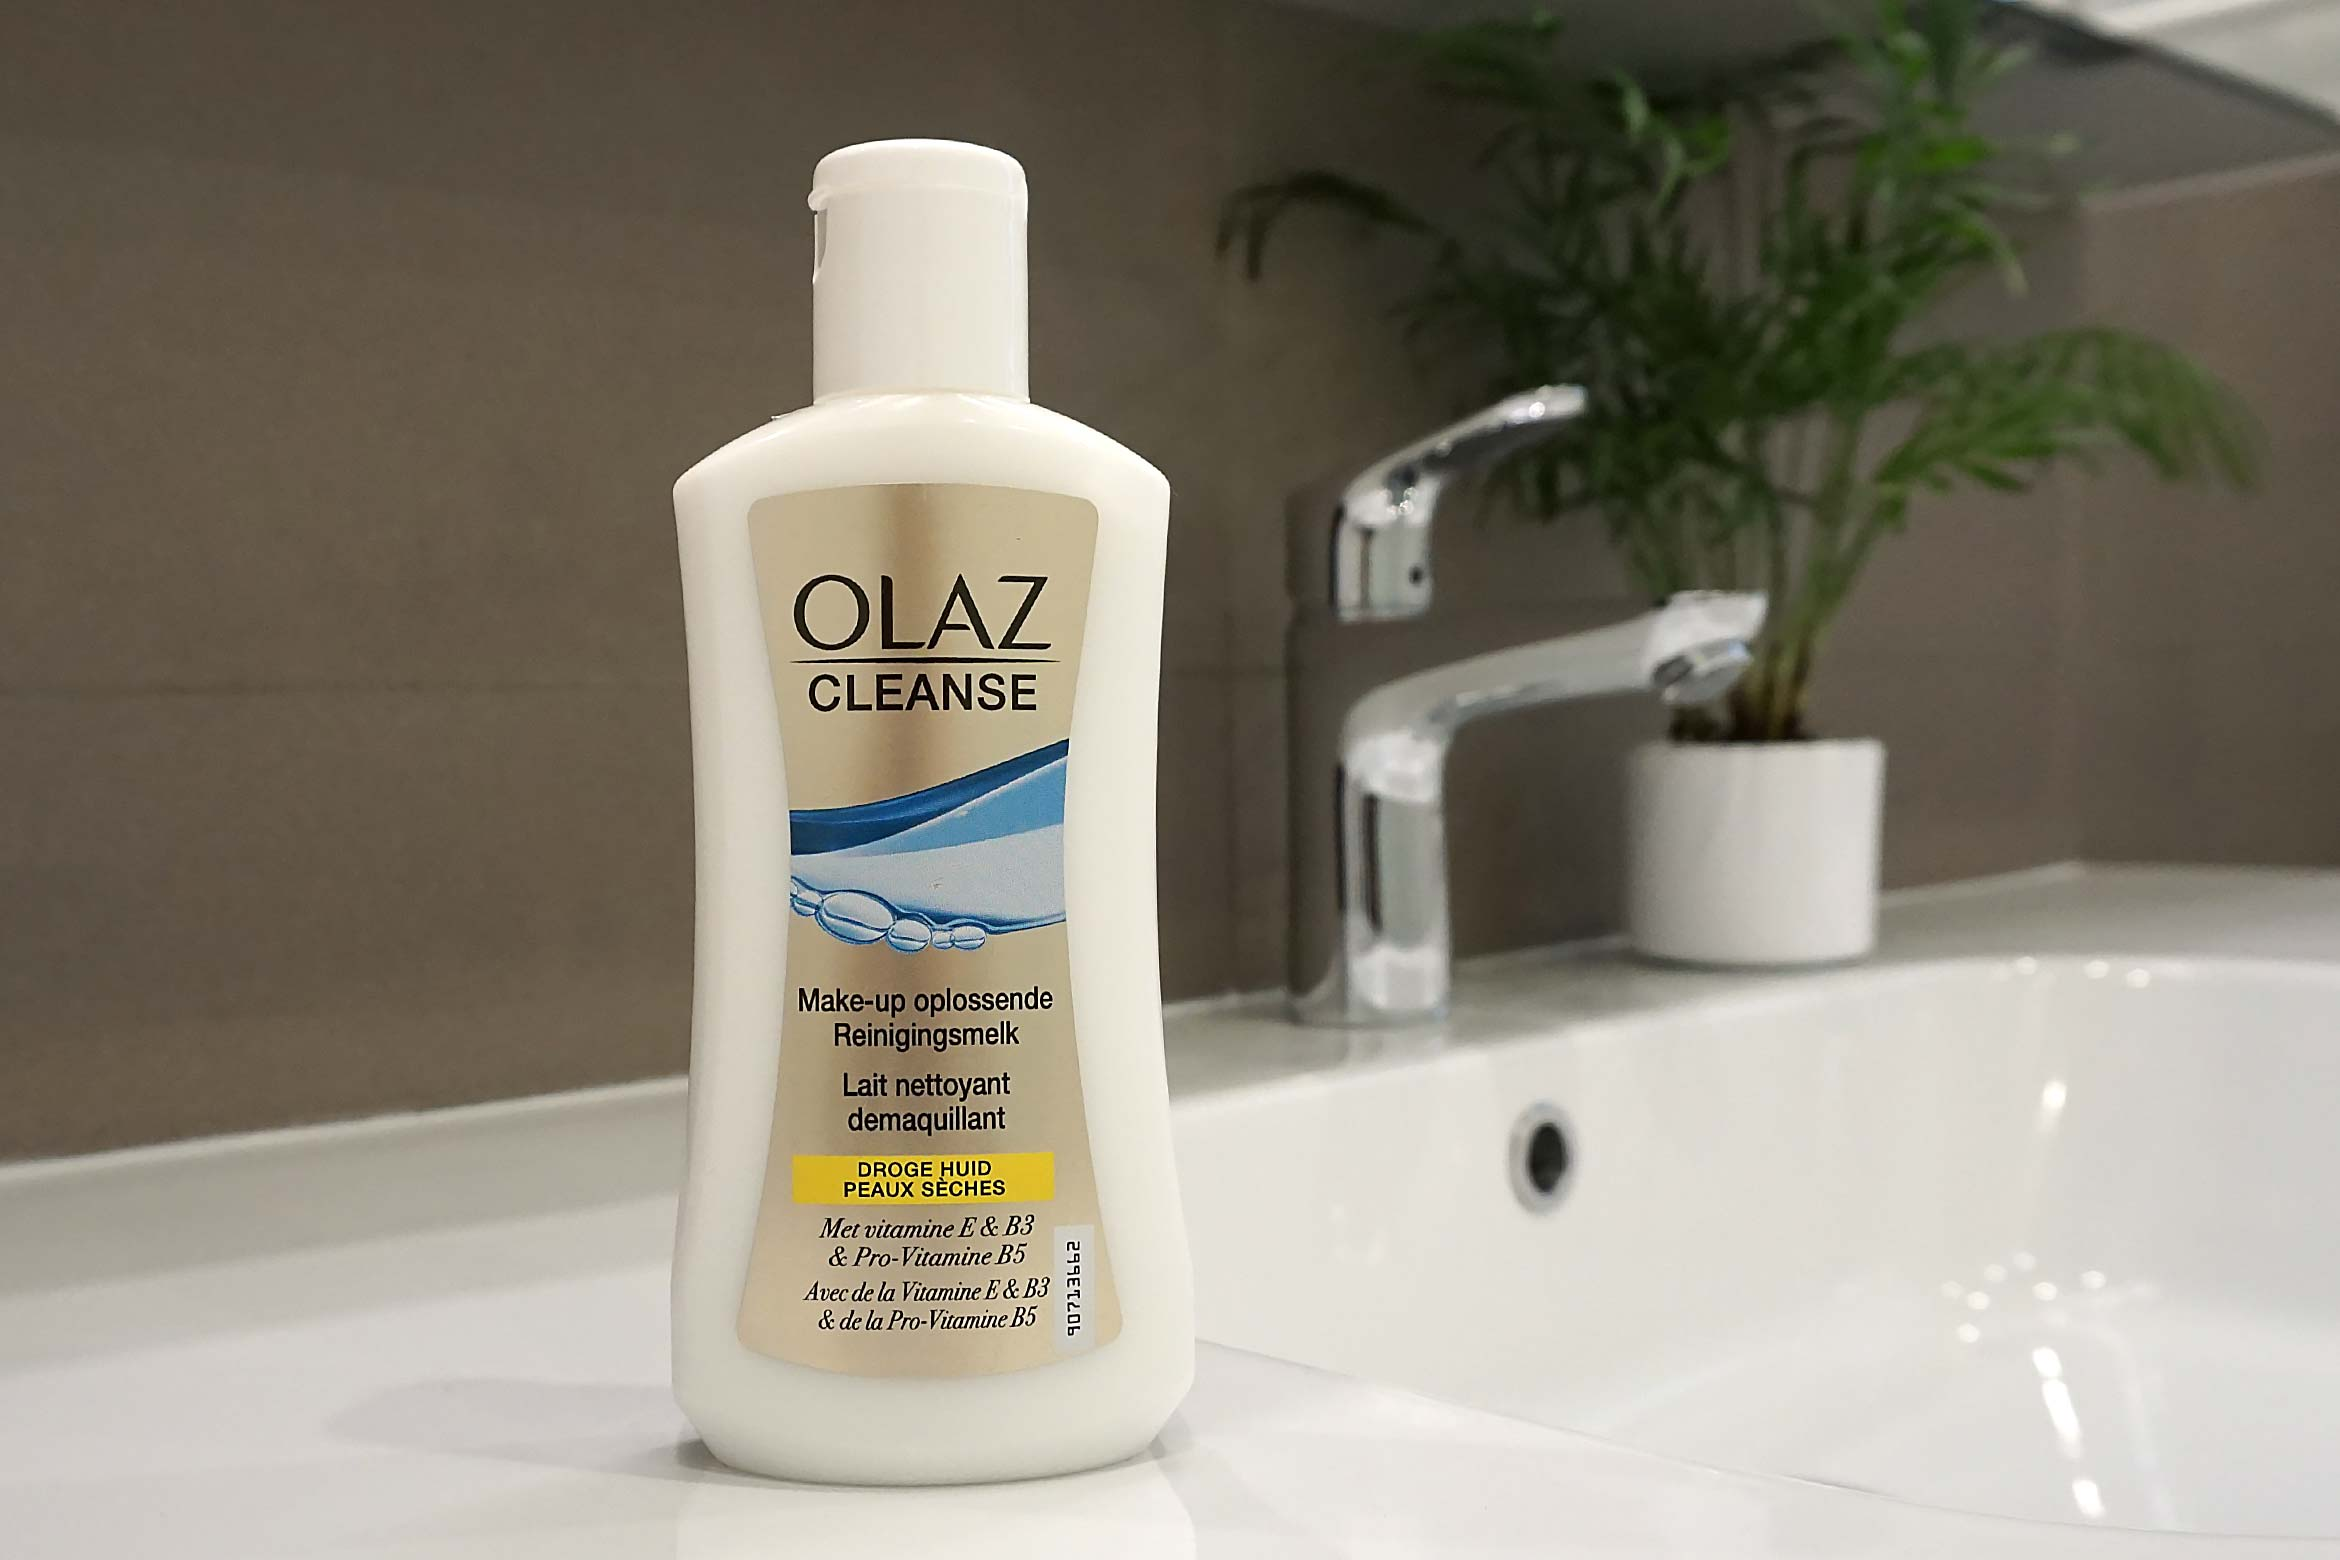 olaz cleanse make up oplossende reinigingsmelk review